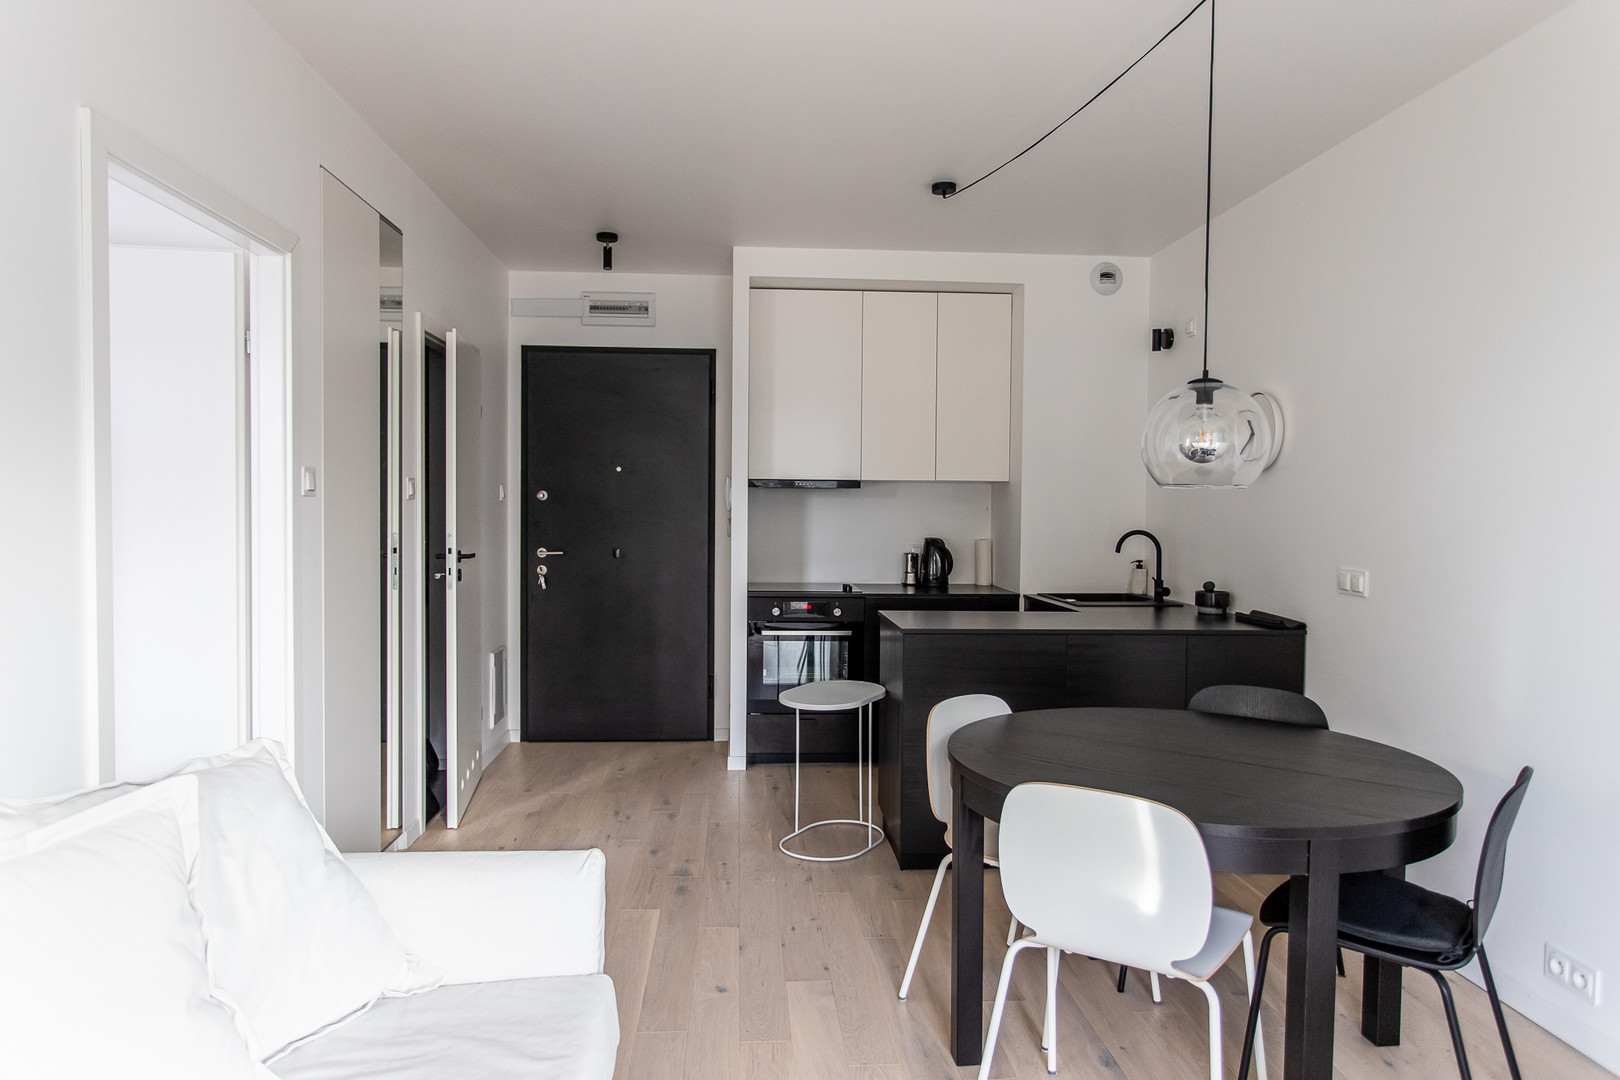 Flat to let Ursa Warsaw-5.jpg